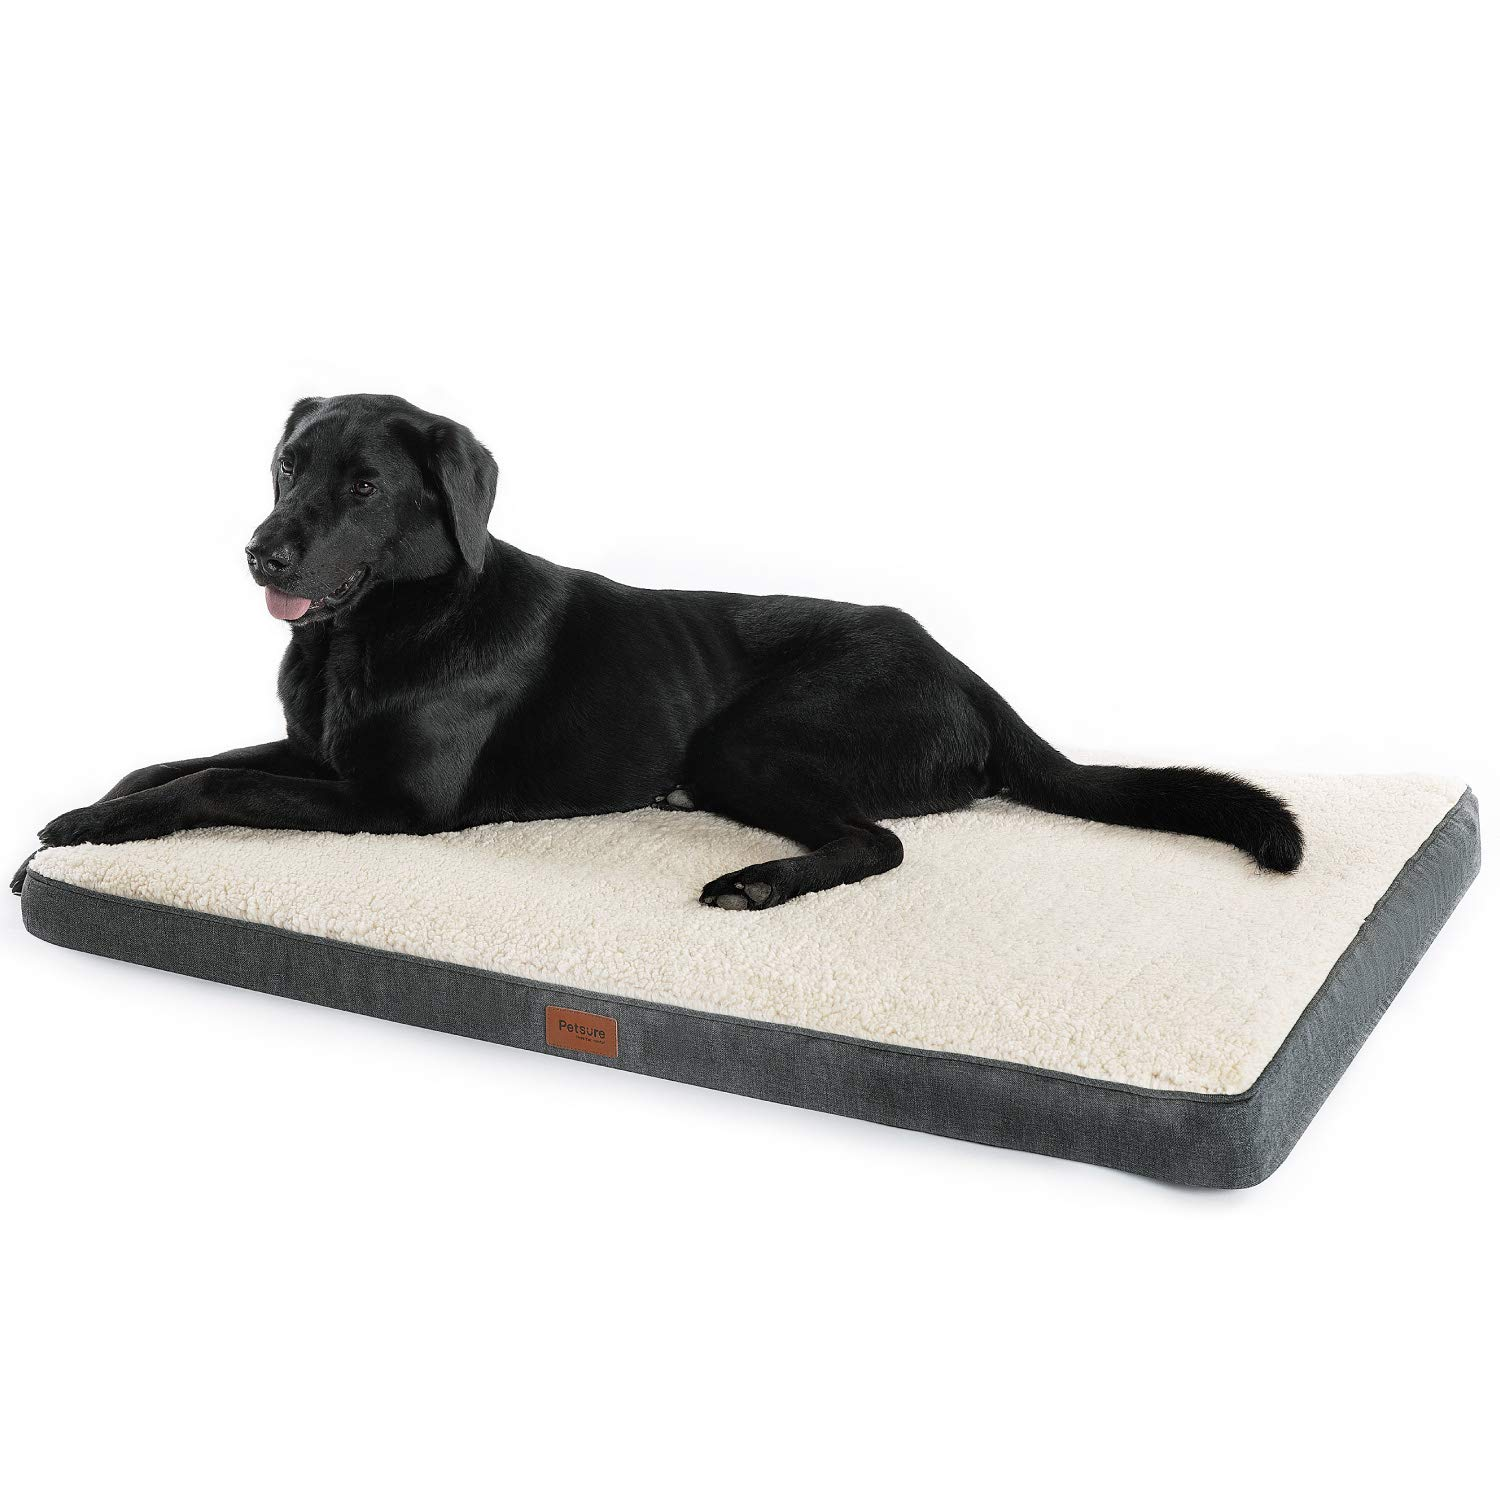 Petsure Orthopedic Dog Bed (XL, 44''x32''x3'') for Small, Medium, Large Pets Up to 100 lbs - Foam Dog Bed with Plush Sherpa Top - Washable Cover - Grey by Petsure